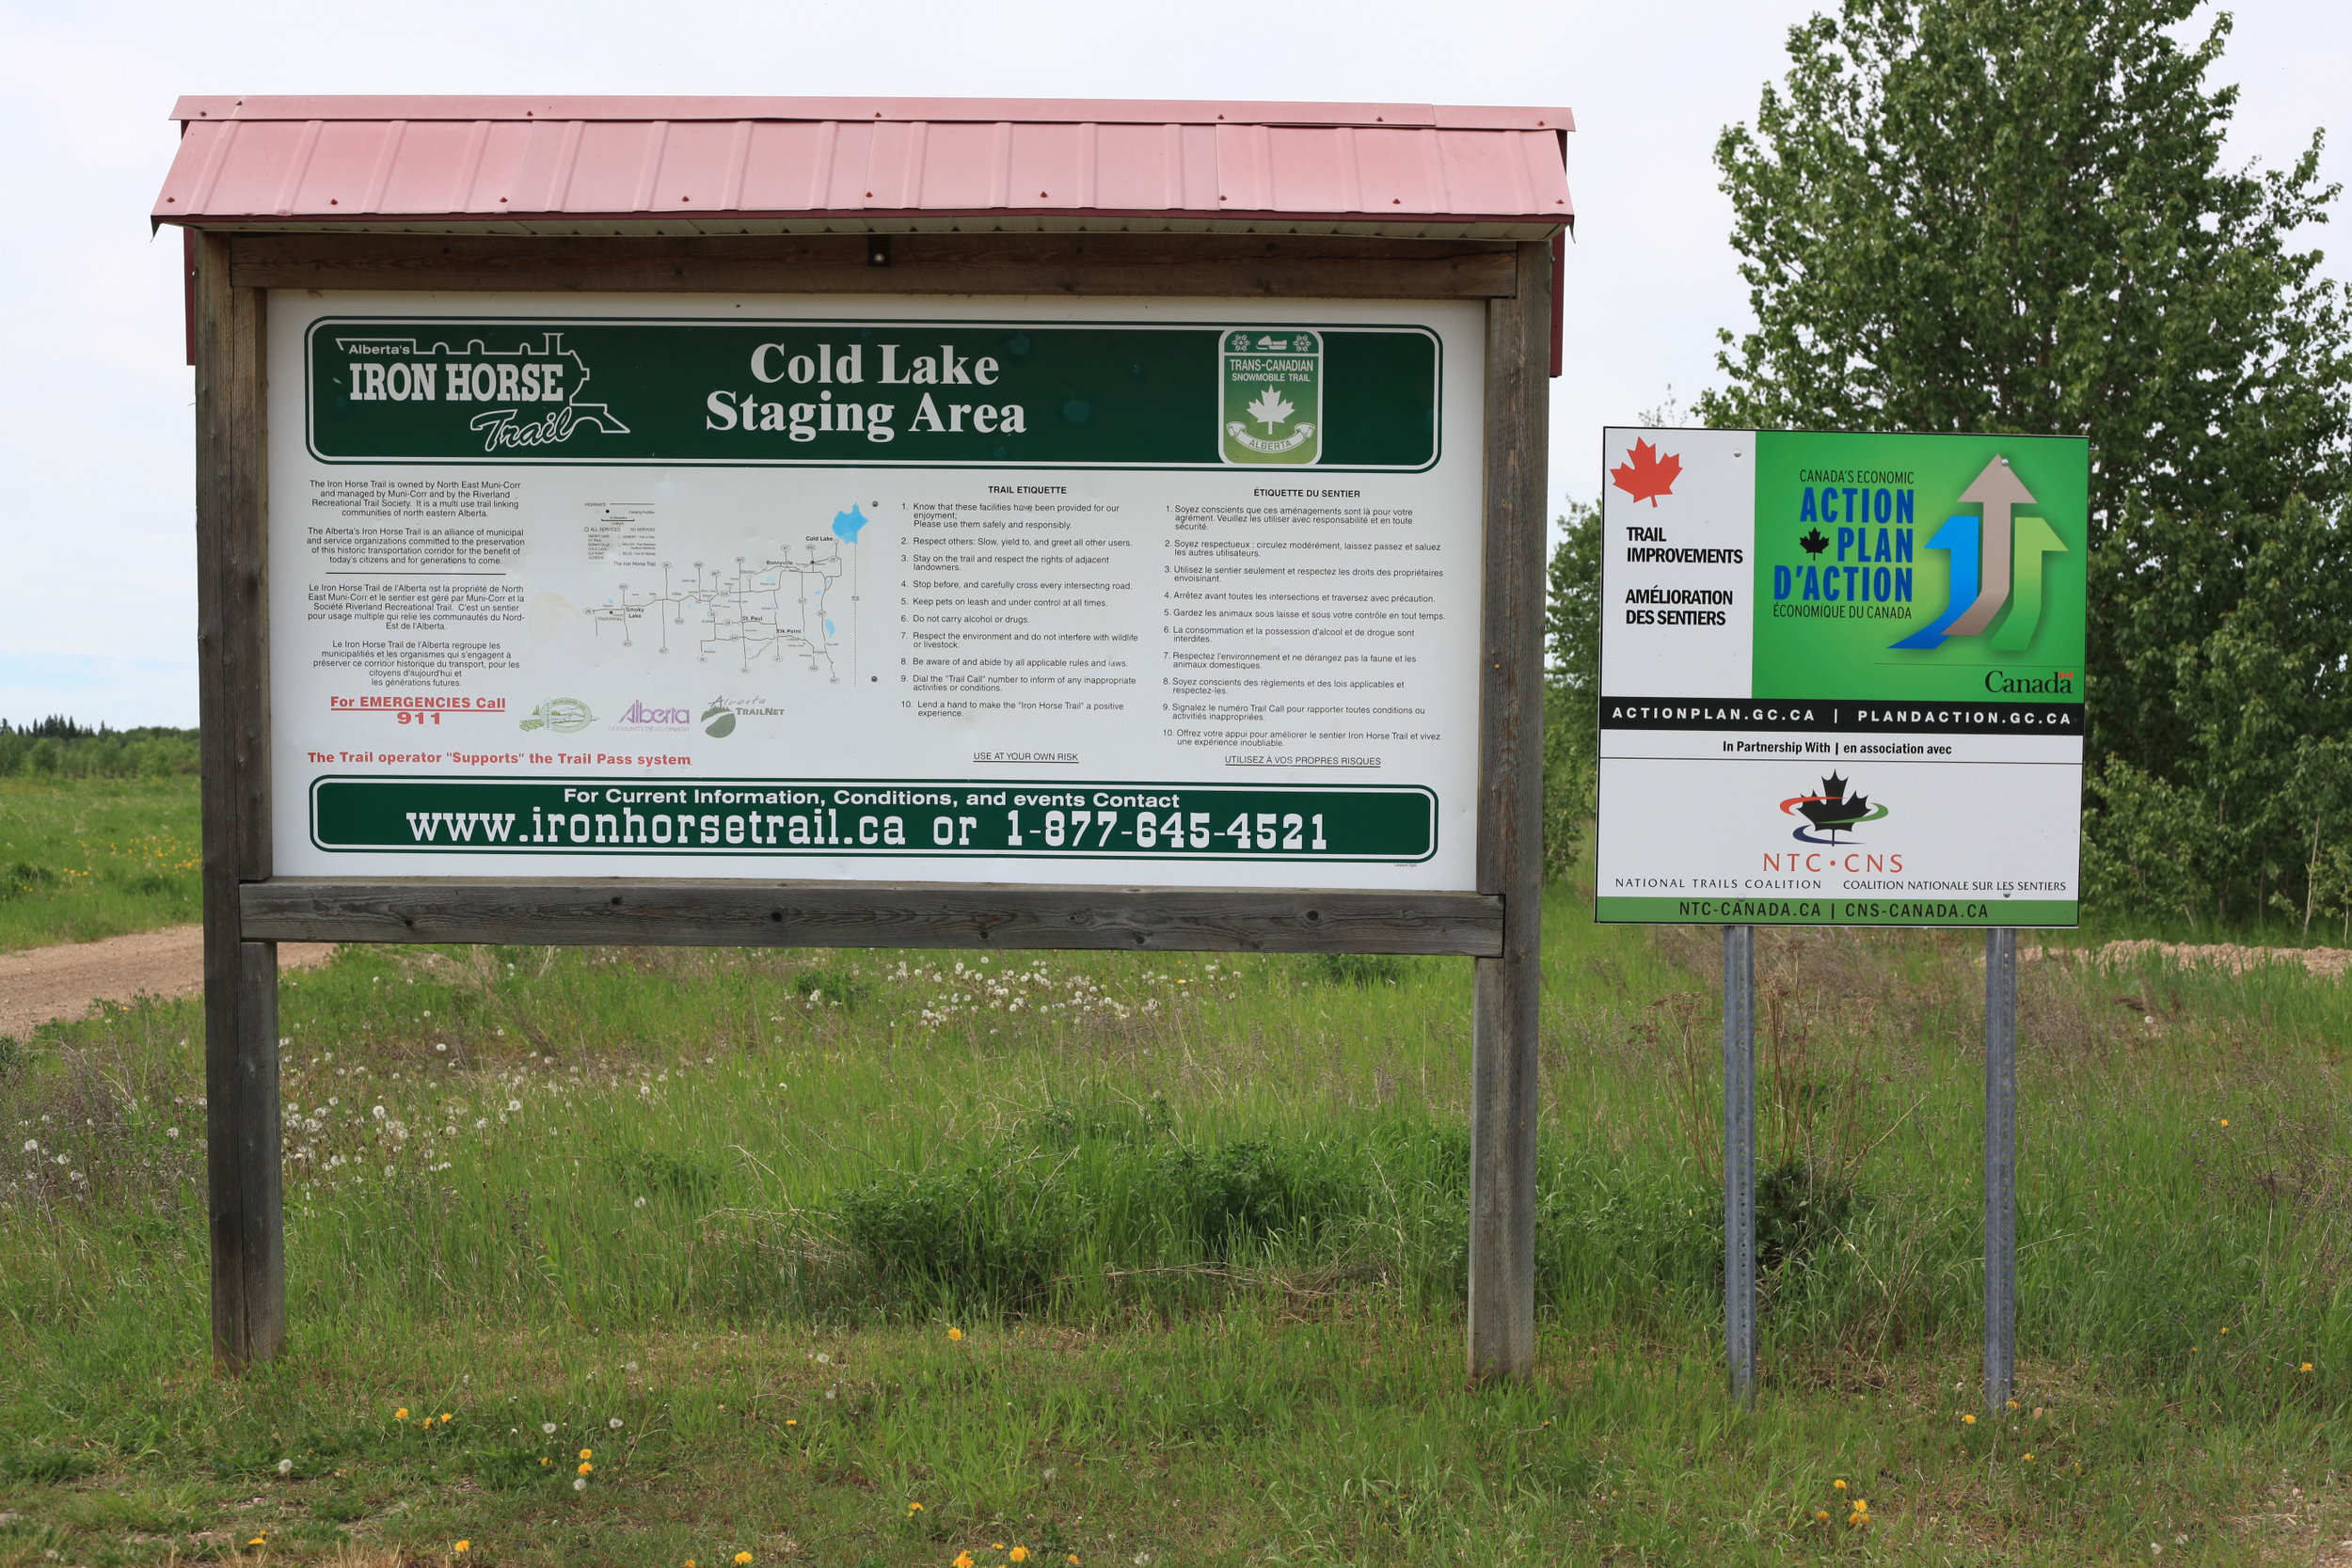 Iron Horse Trail trailhead at Cold Lake Staging Area